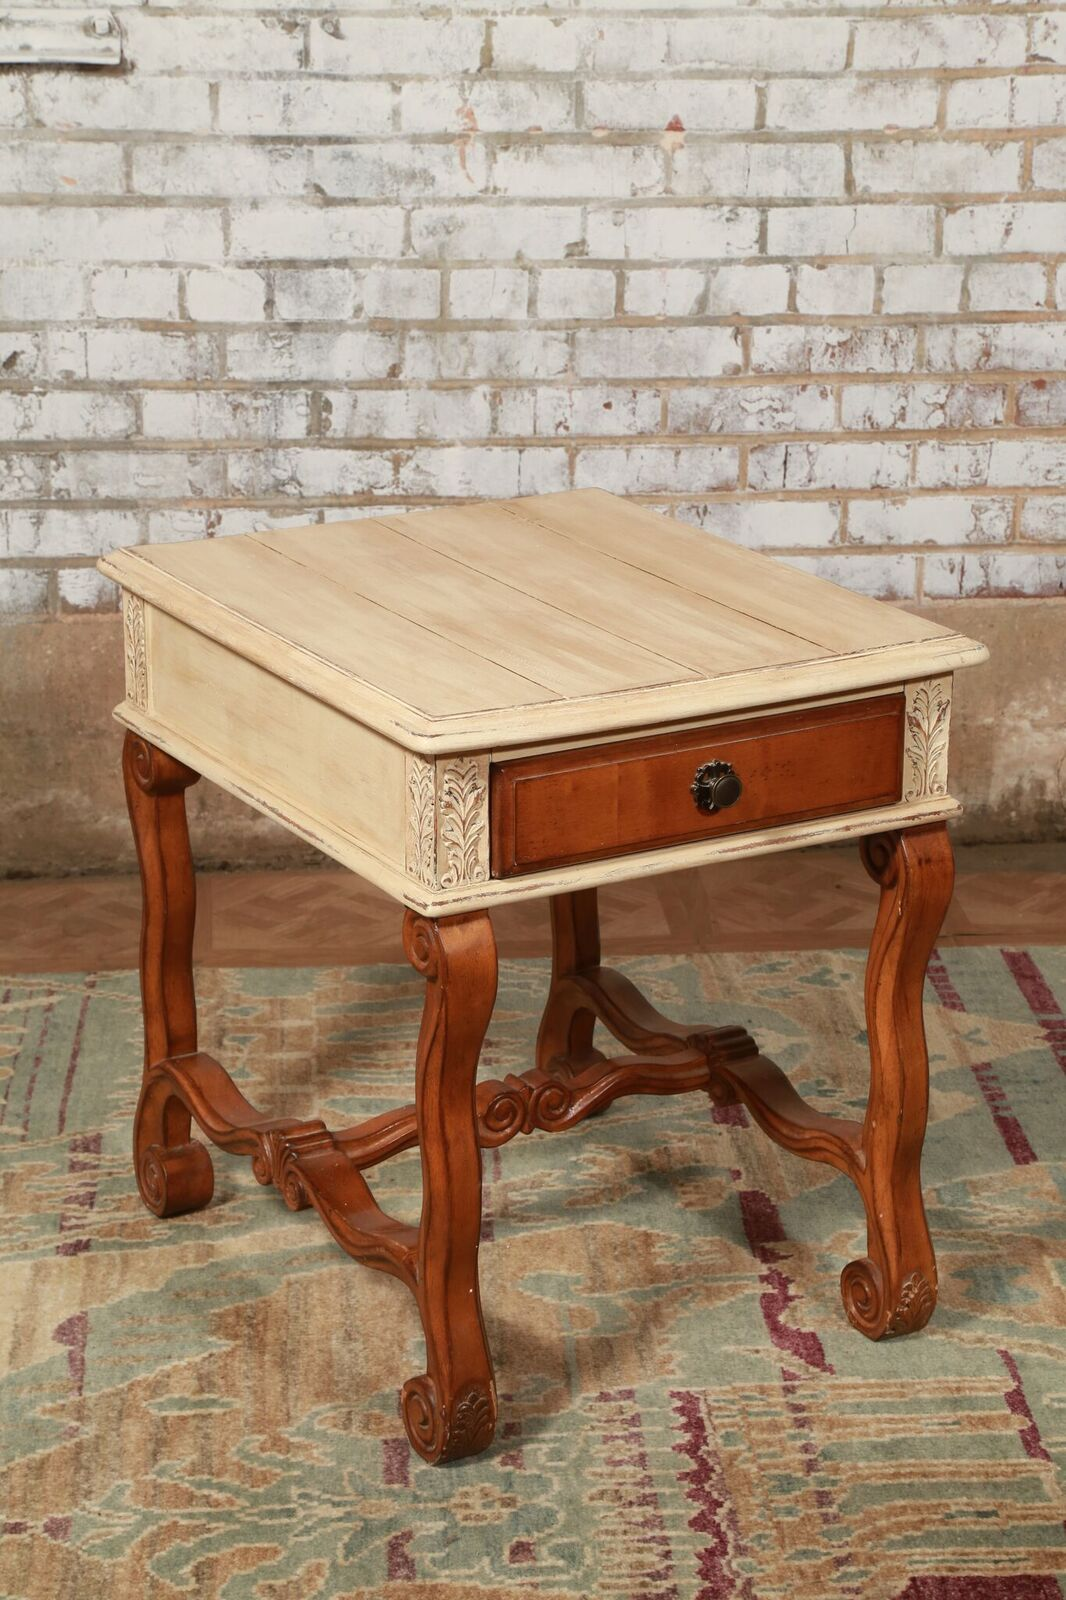 End Table - $139